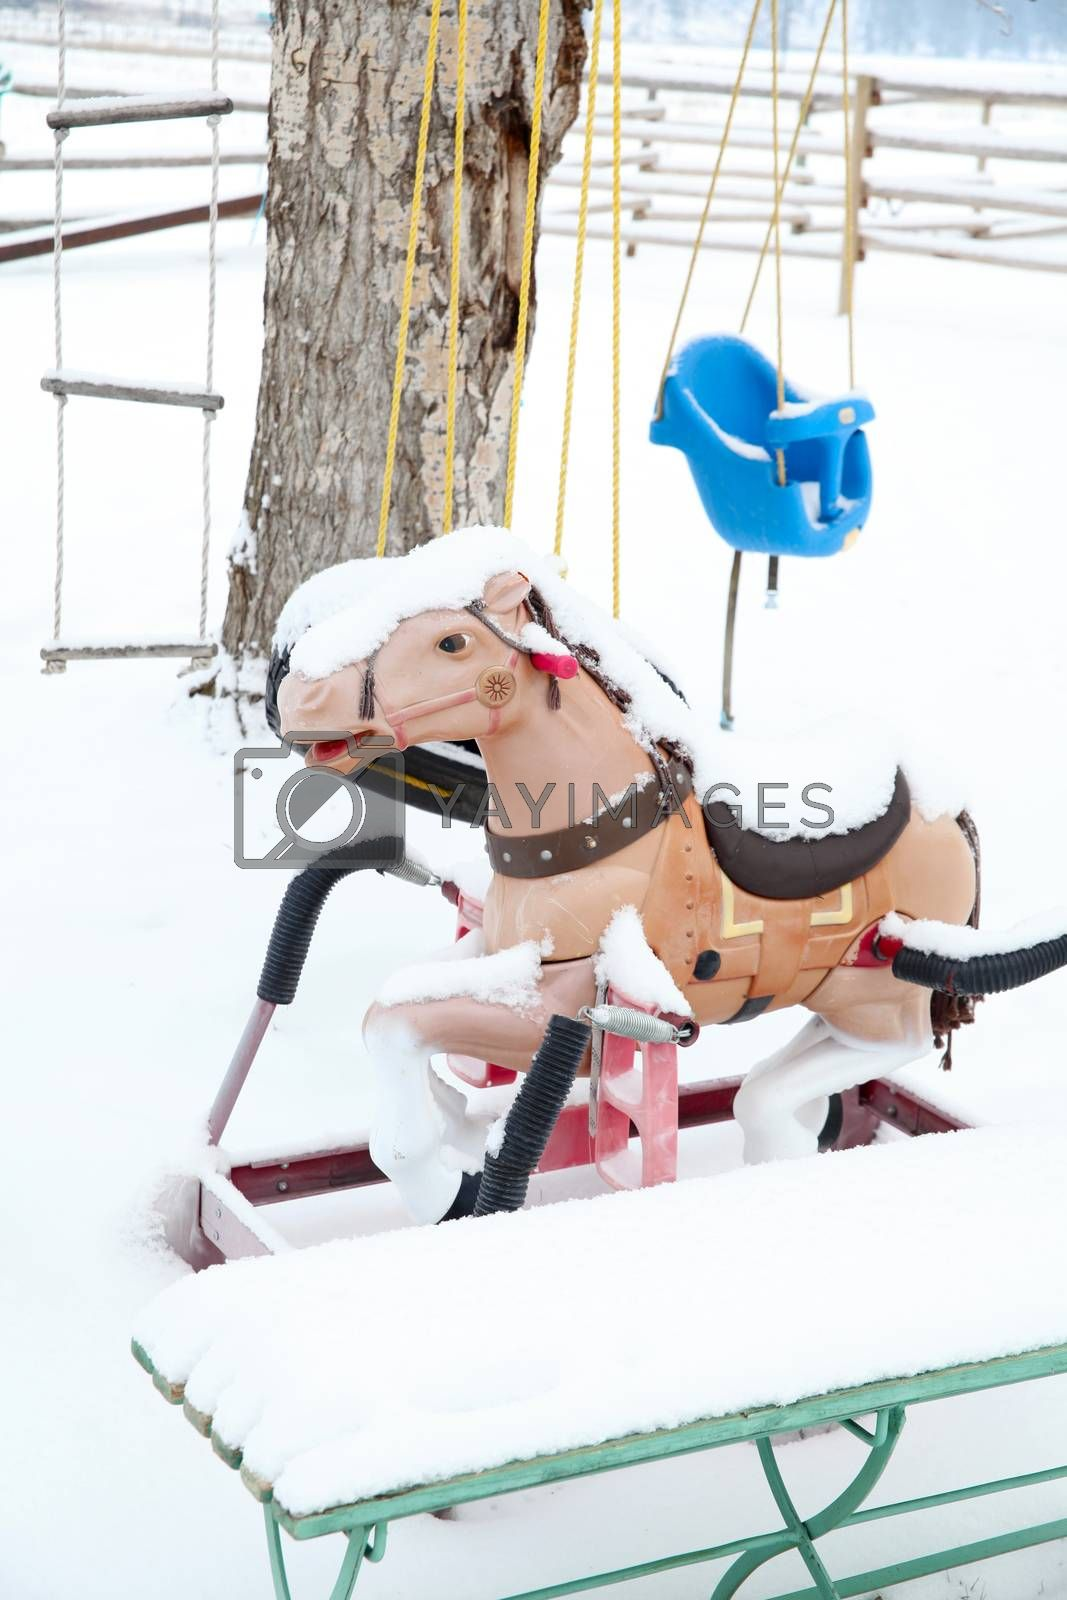 Snow covered outdoor swing, ladder and bouncy horse